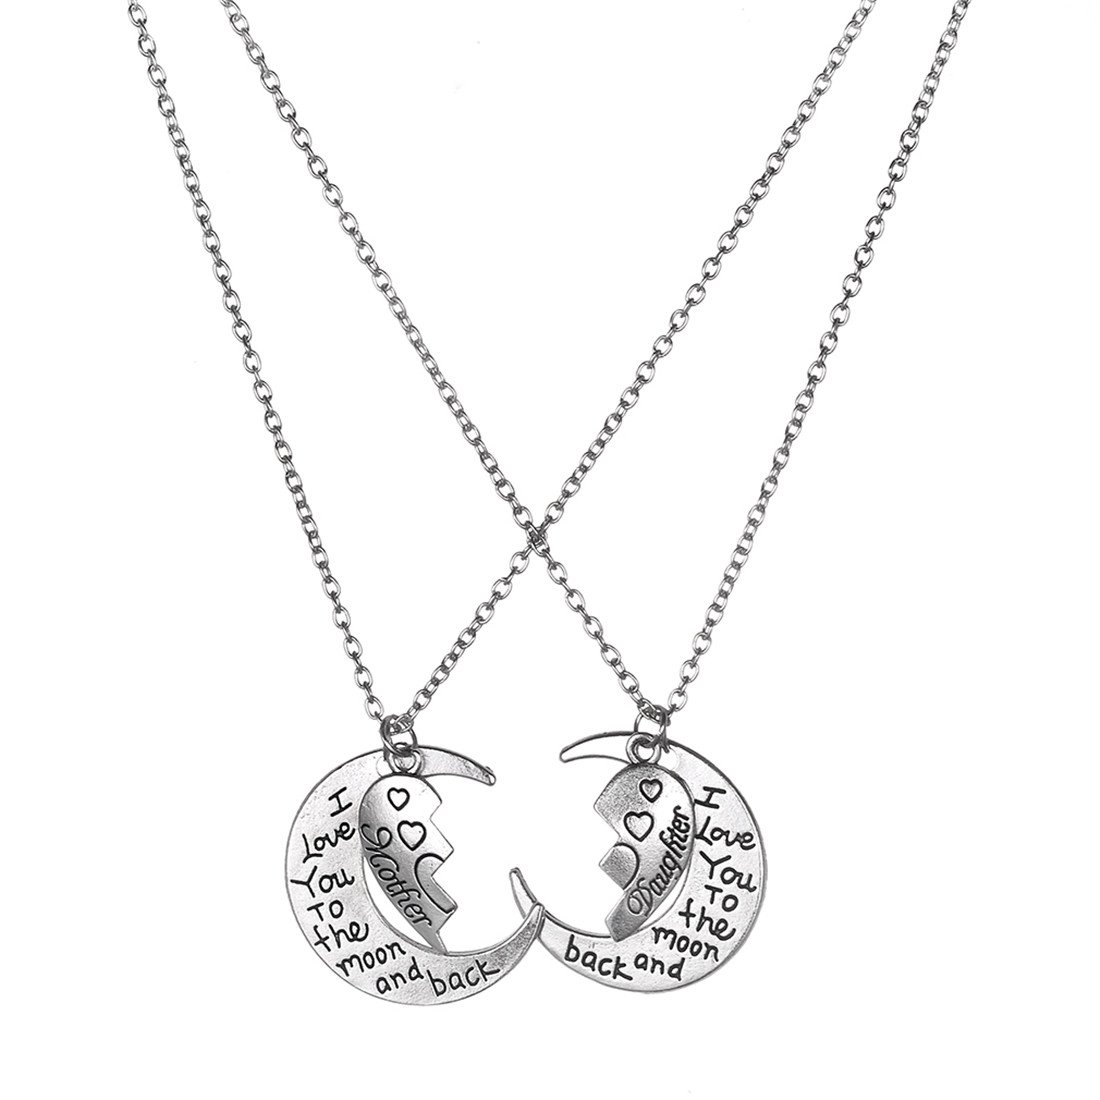 VWH 2pcs I Love You To The Moon And Back Family Pendant Necklace Choker Chain